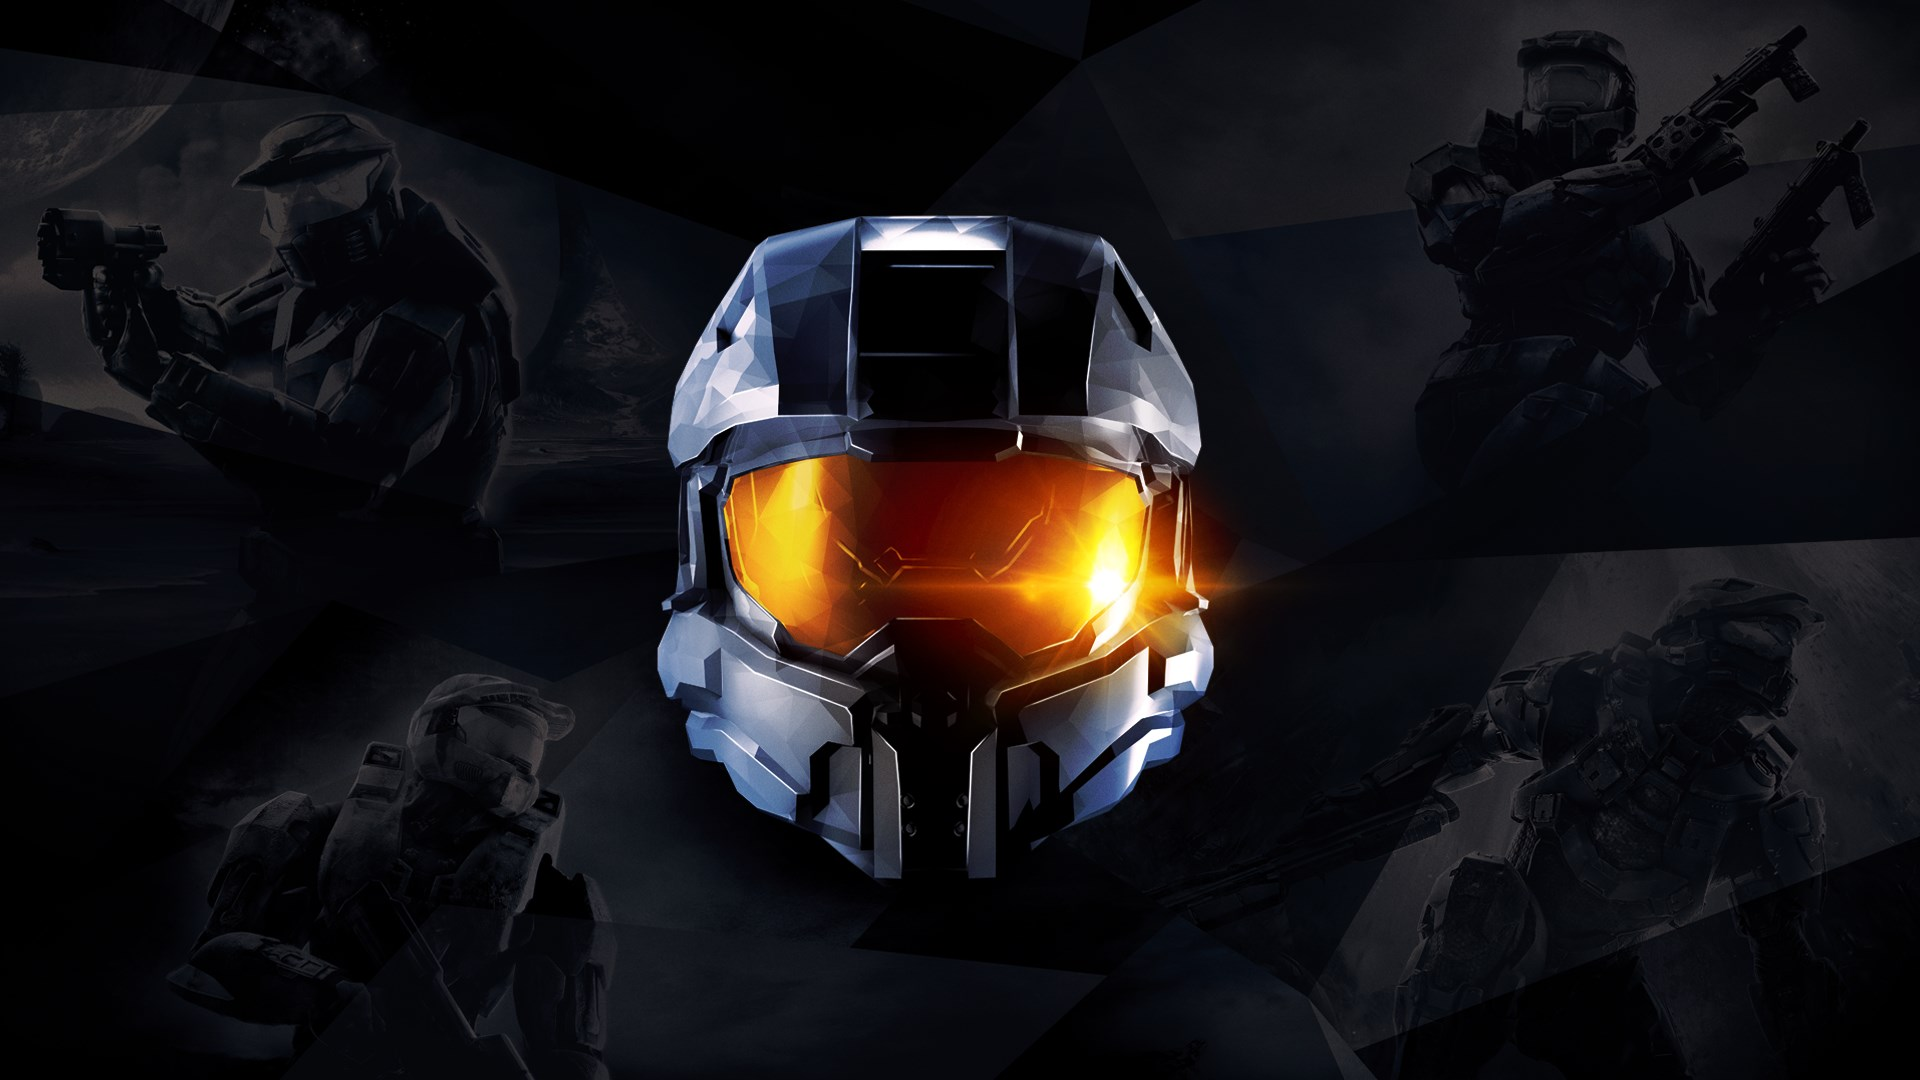 halo 3 pc download ita torrent